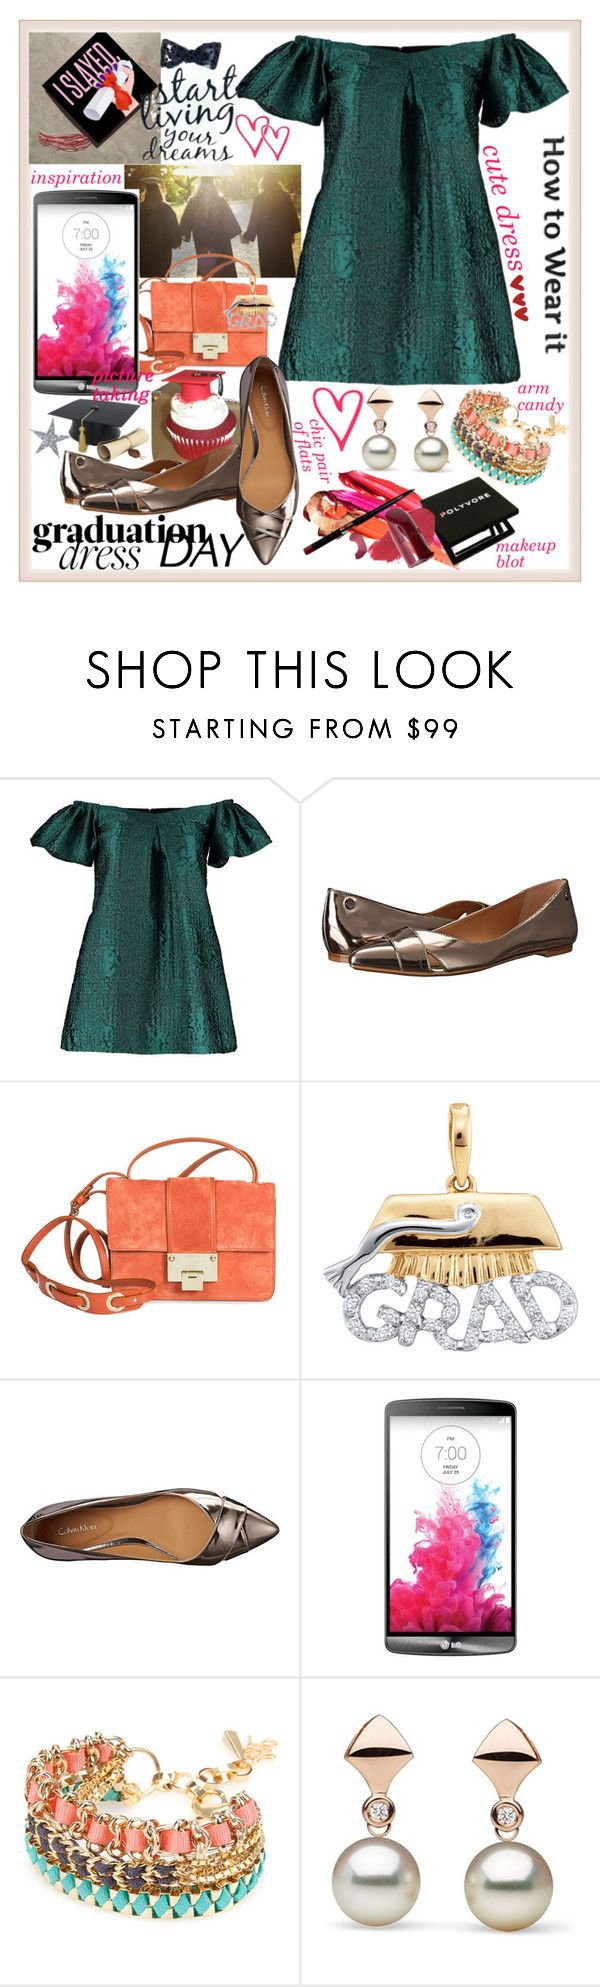 """Graduation Day Dress"" by westcoastcharmed ❤ liked on Polyvore featuring beauty, By Sun, Calvin Klein, Jimmy Choo, John & Pearl and graduationdaydress"